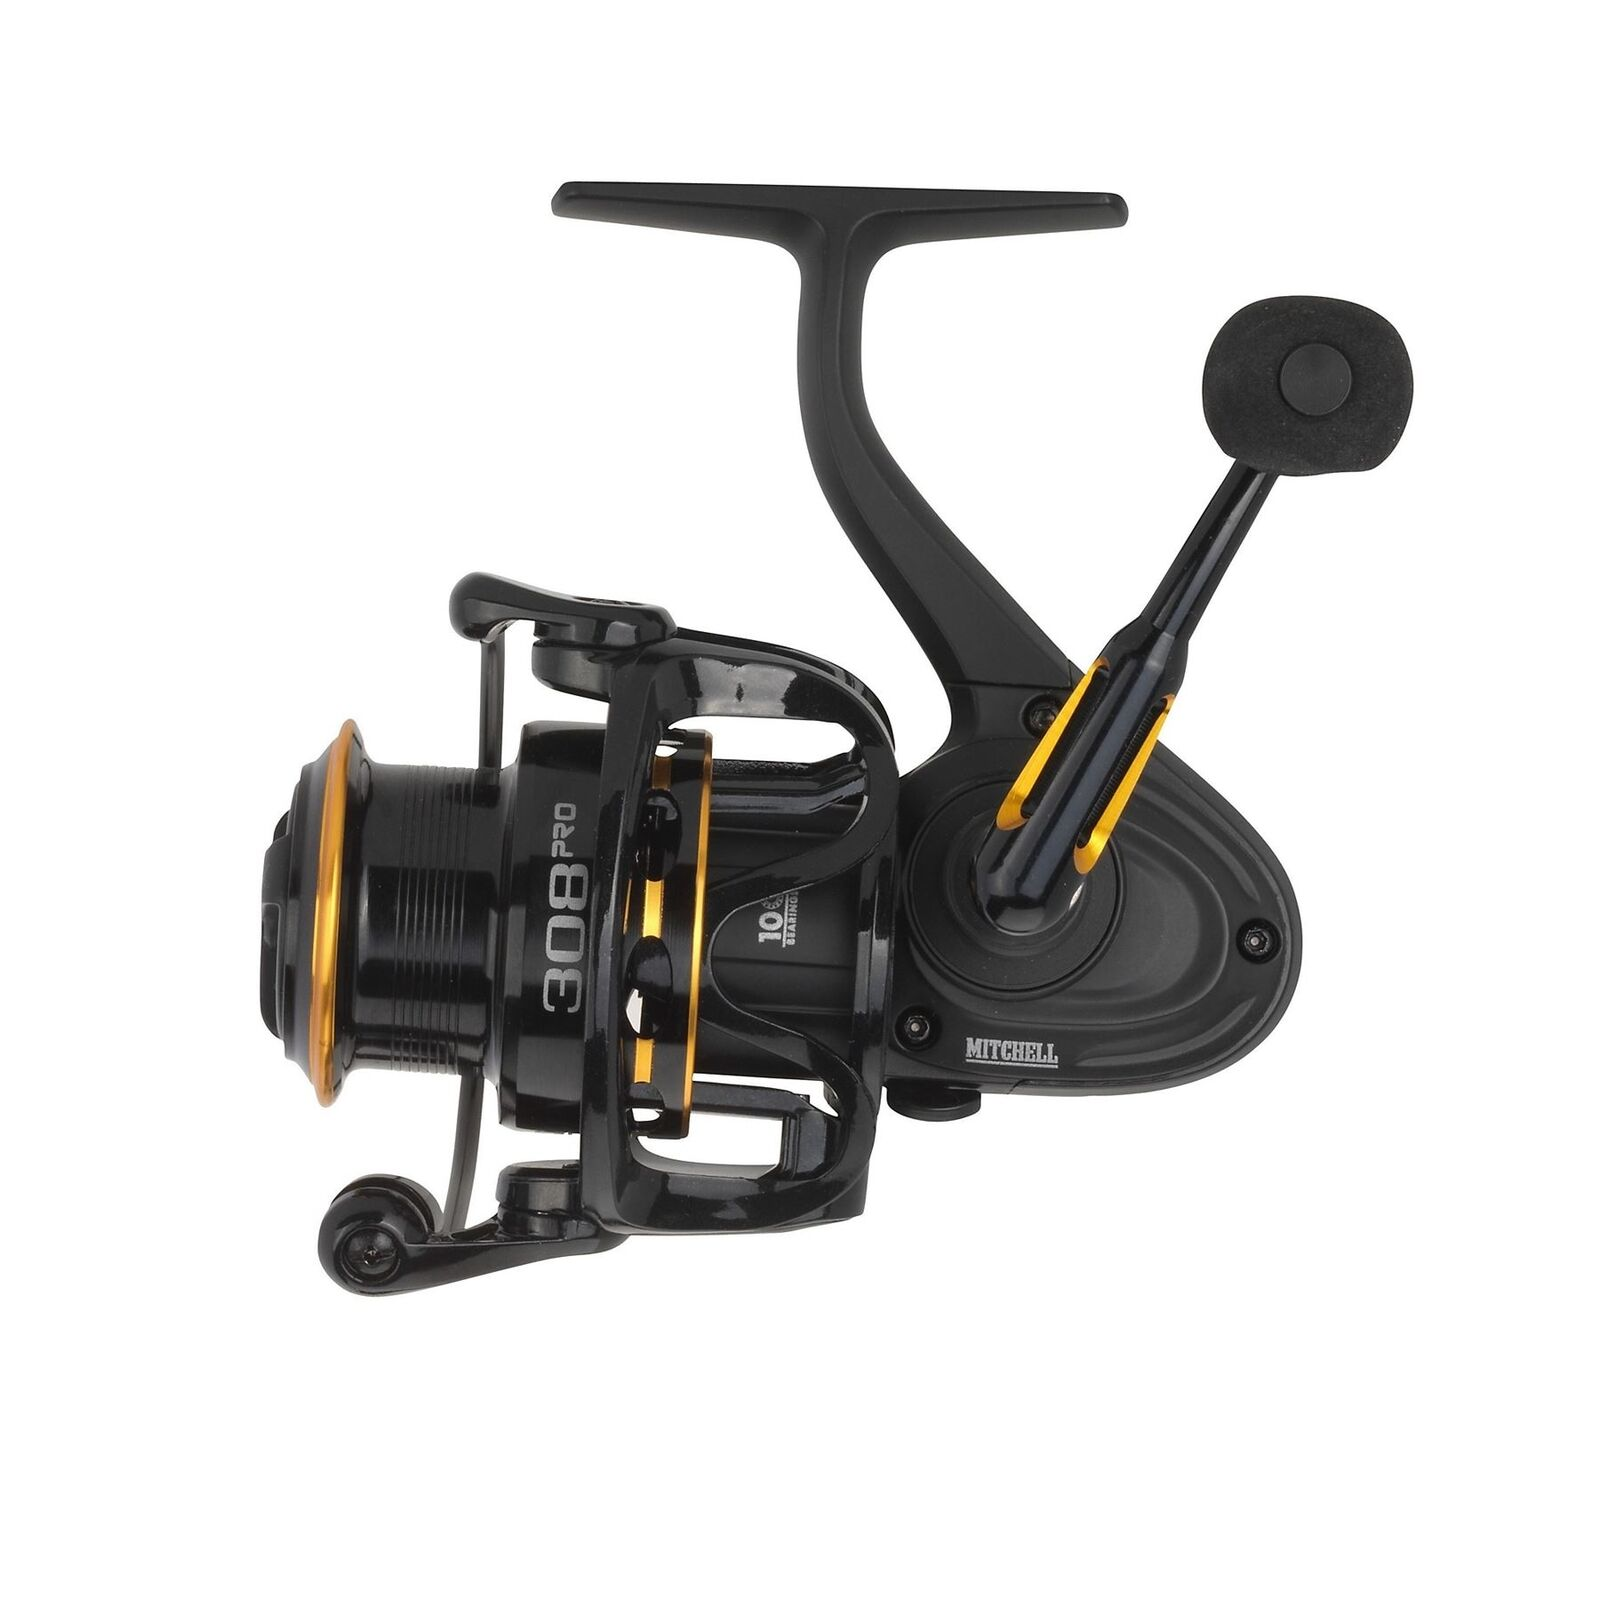 Mitchell 300 Pro    4000   Fixed Spool Fishing Reel  save on clearance